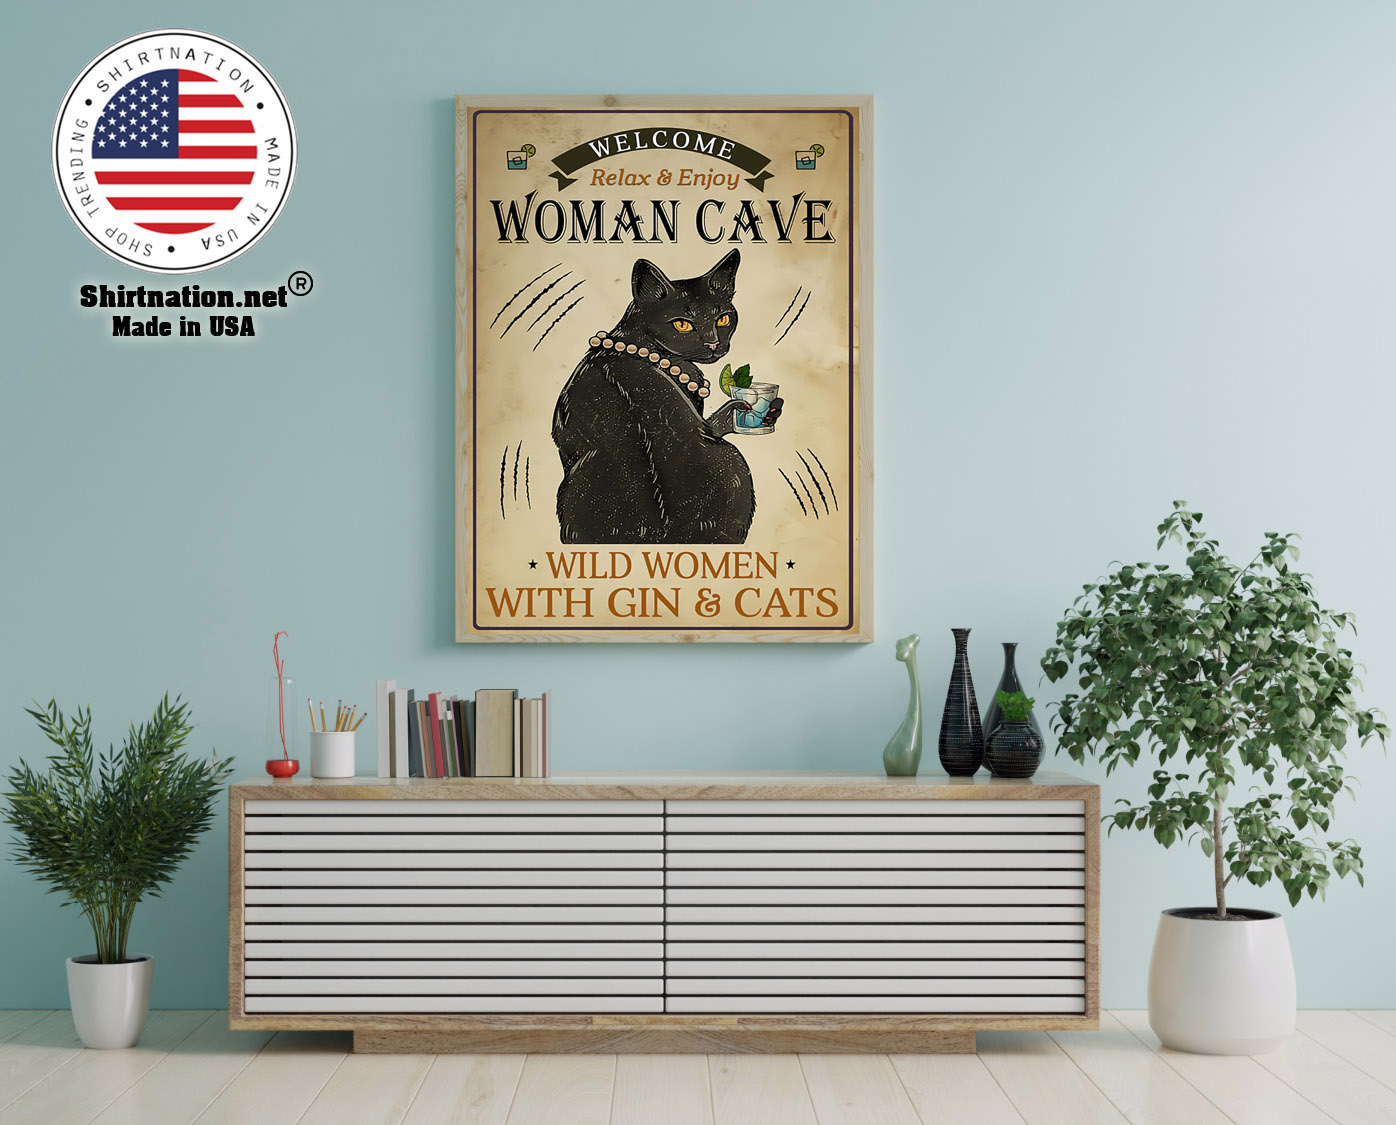 Welcome relax enjoy woman cave will women with gin and cats poster 12